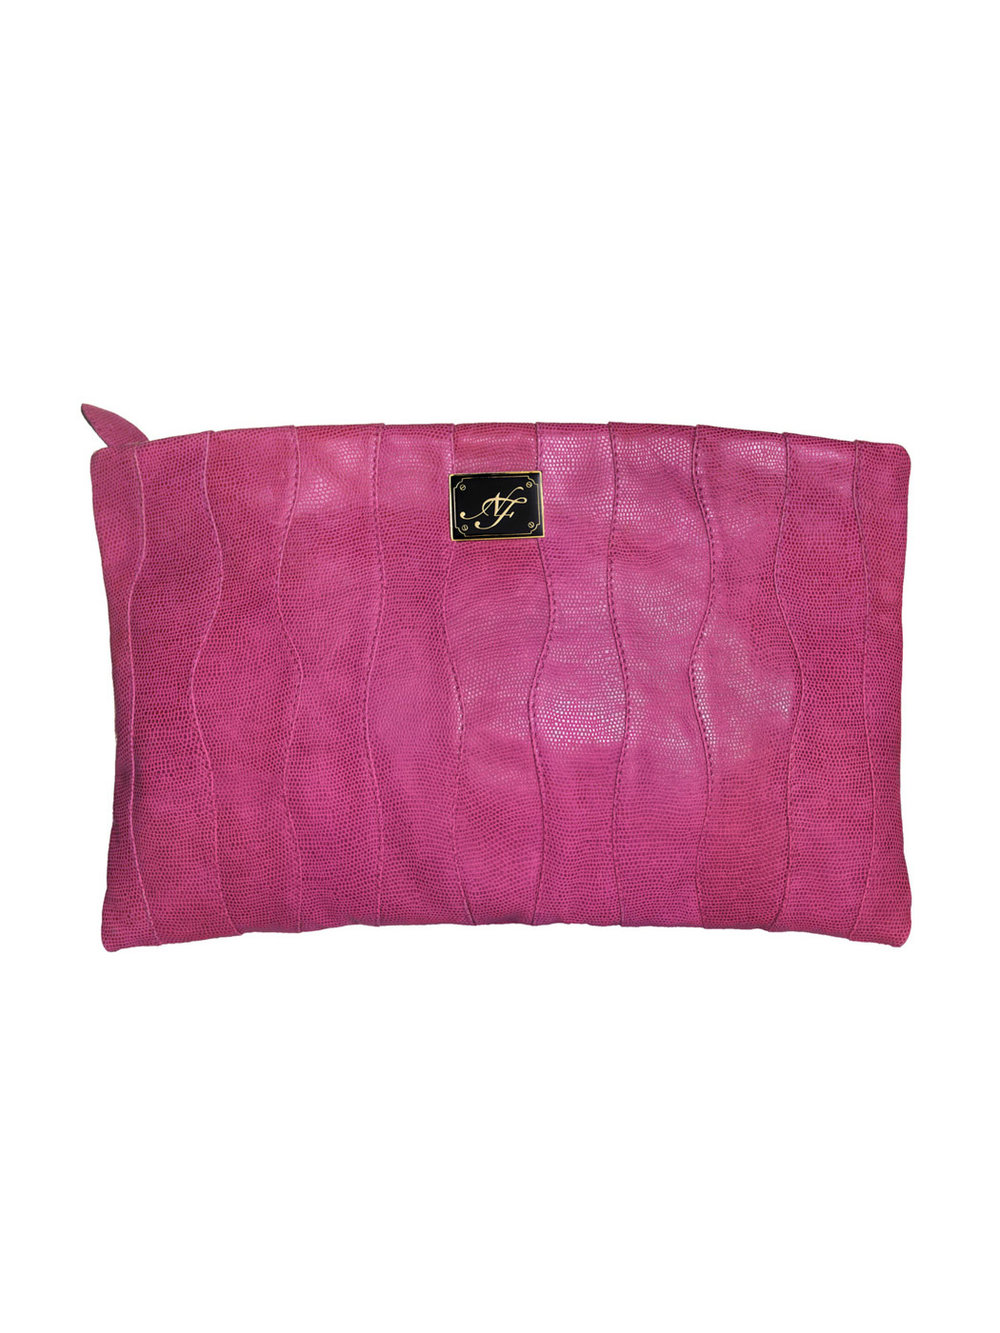 Copy of Clutch fucsia - $210